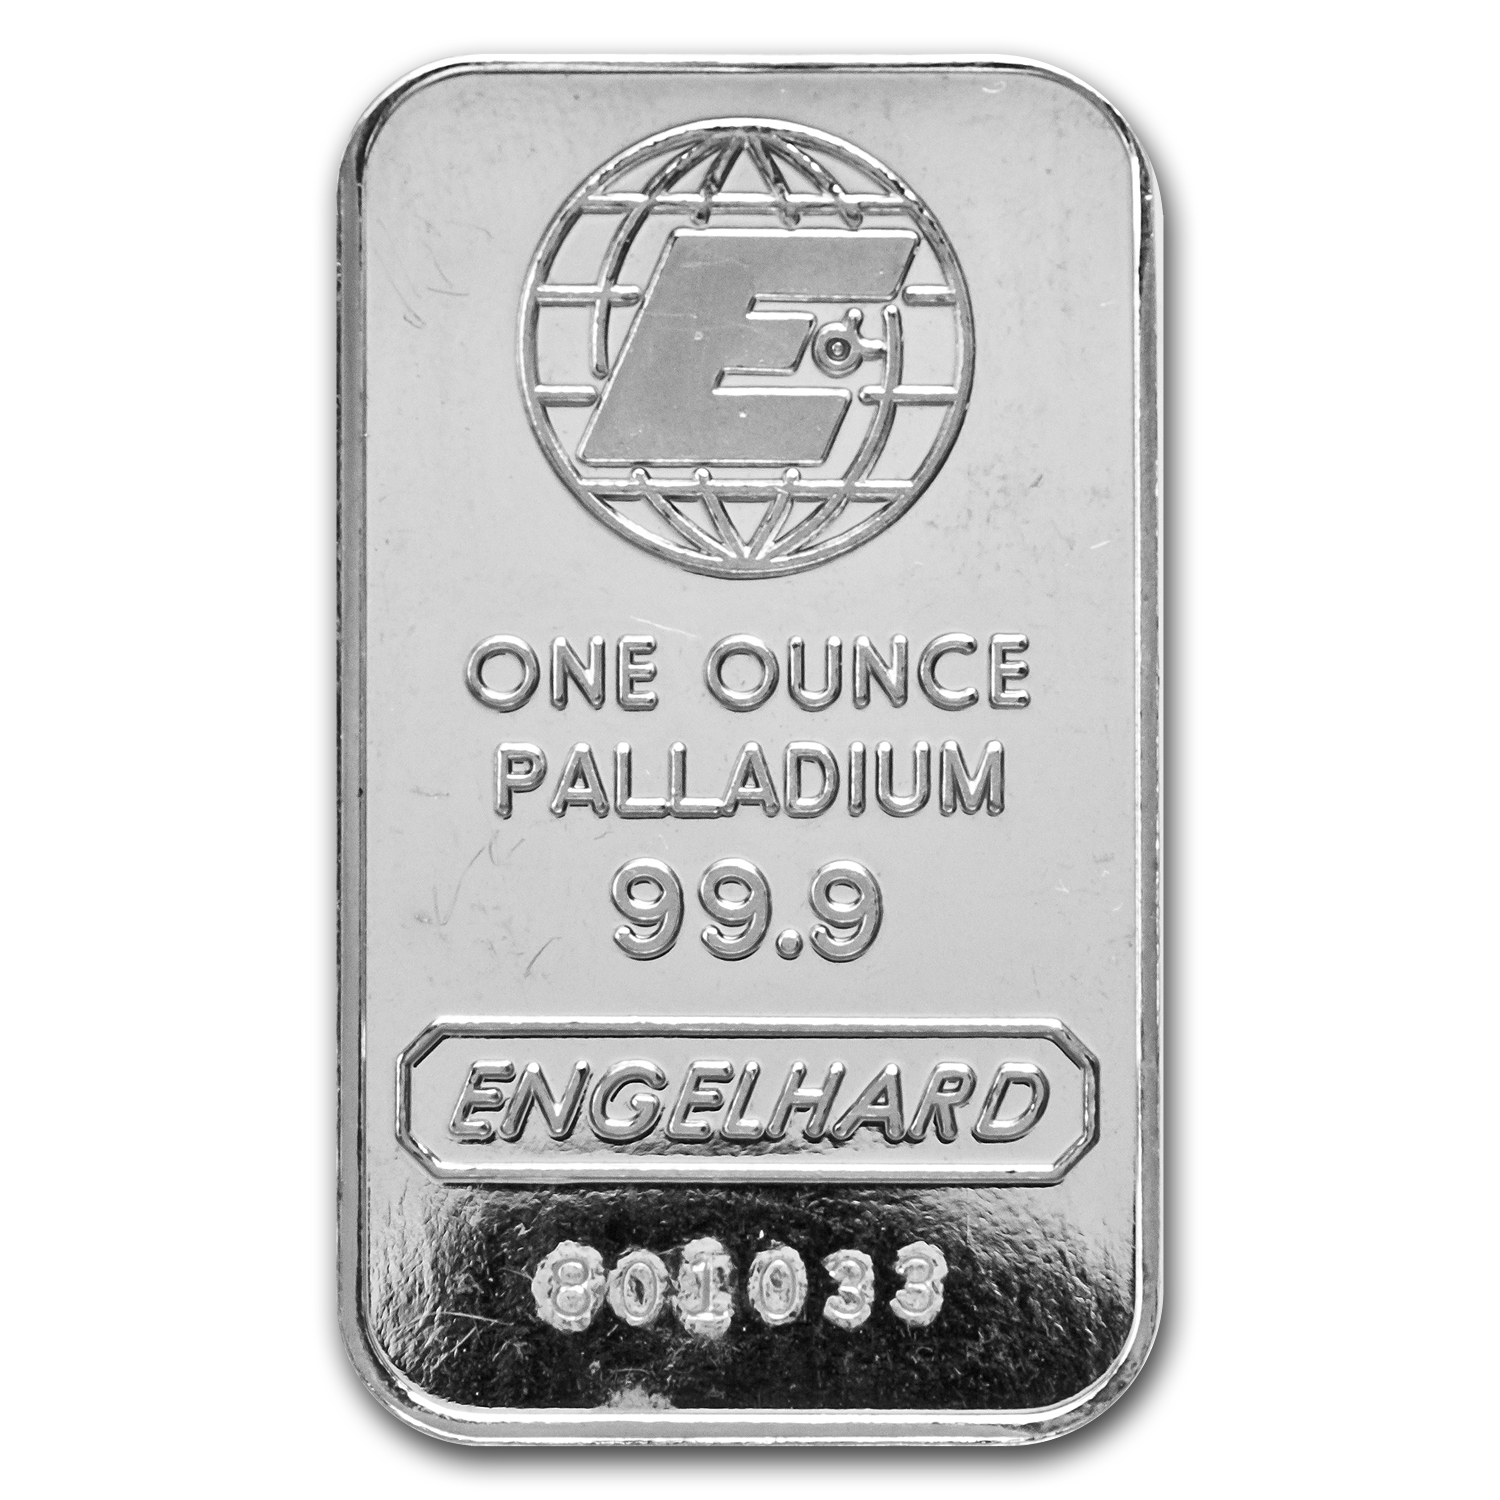 1 oz Palladium Bar - Engelhard (No Assay)